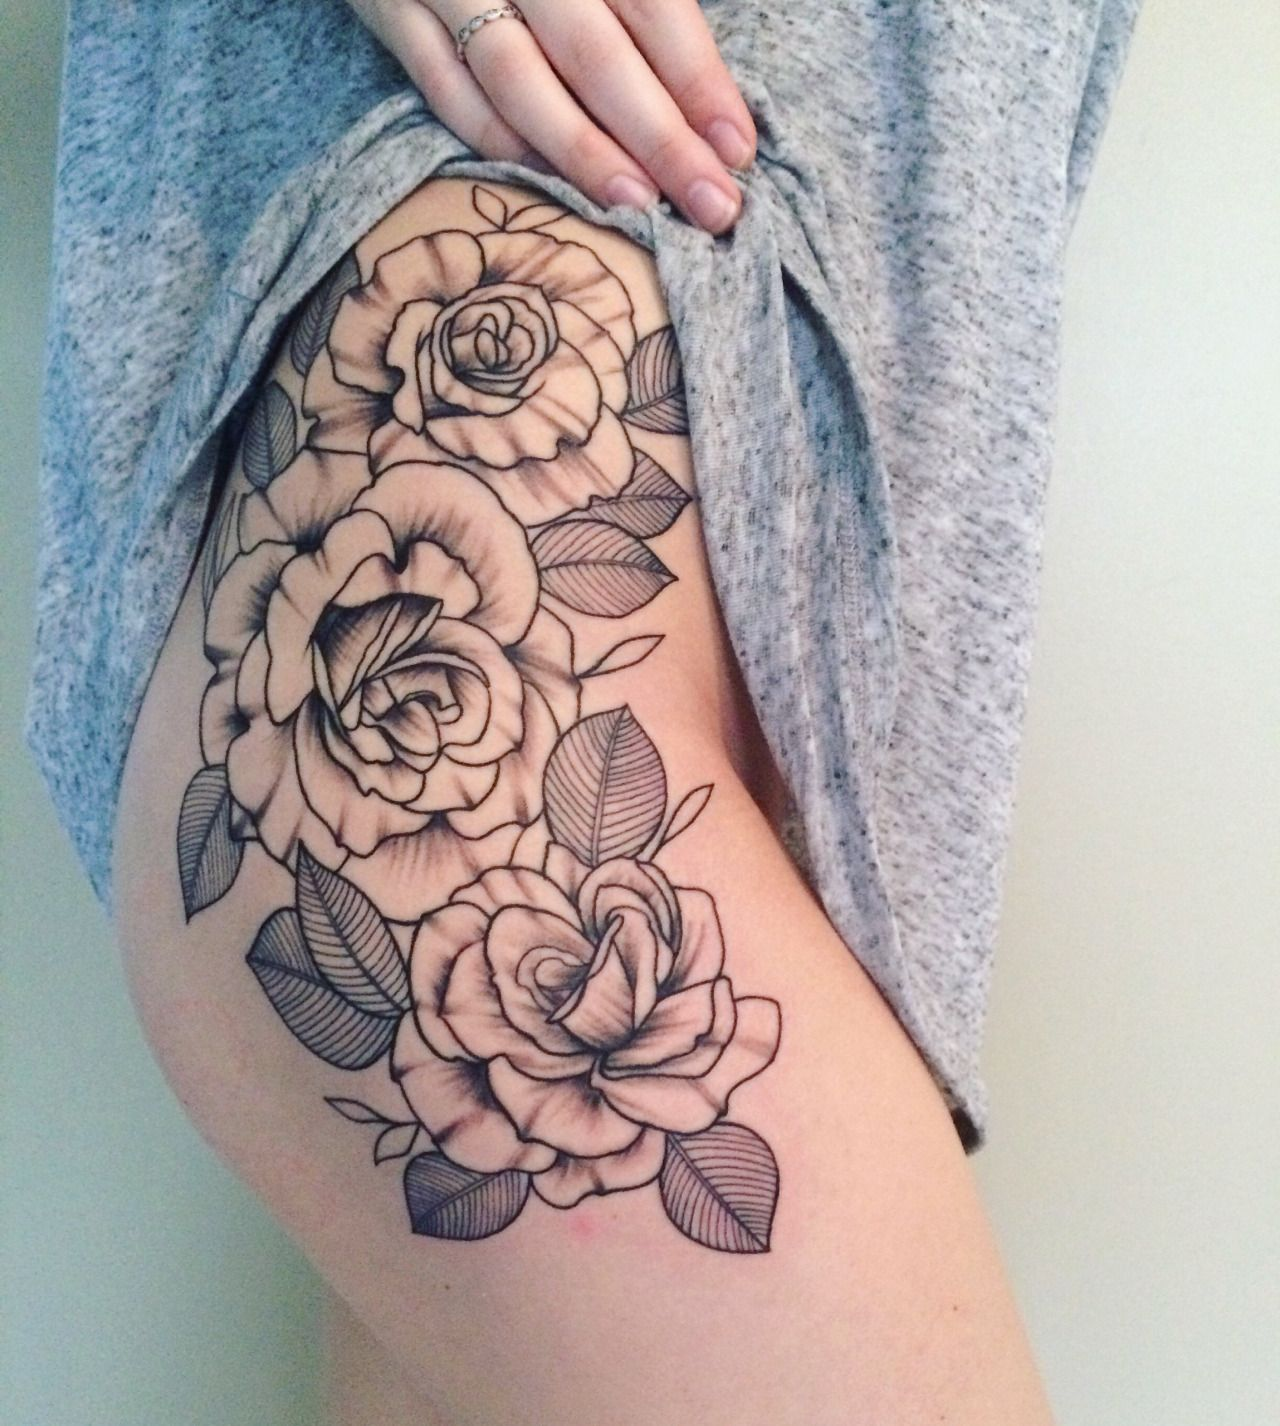 tattoos - roses on my hip/thigh | ink your skin | pinterest